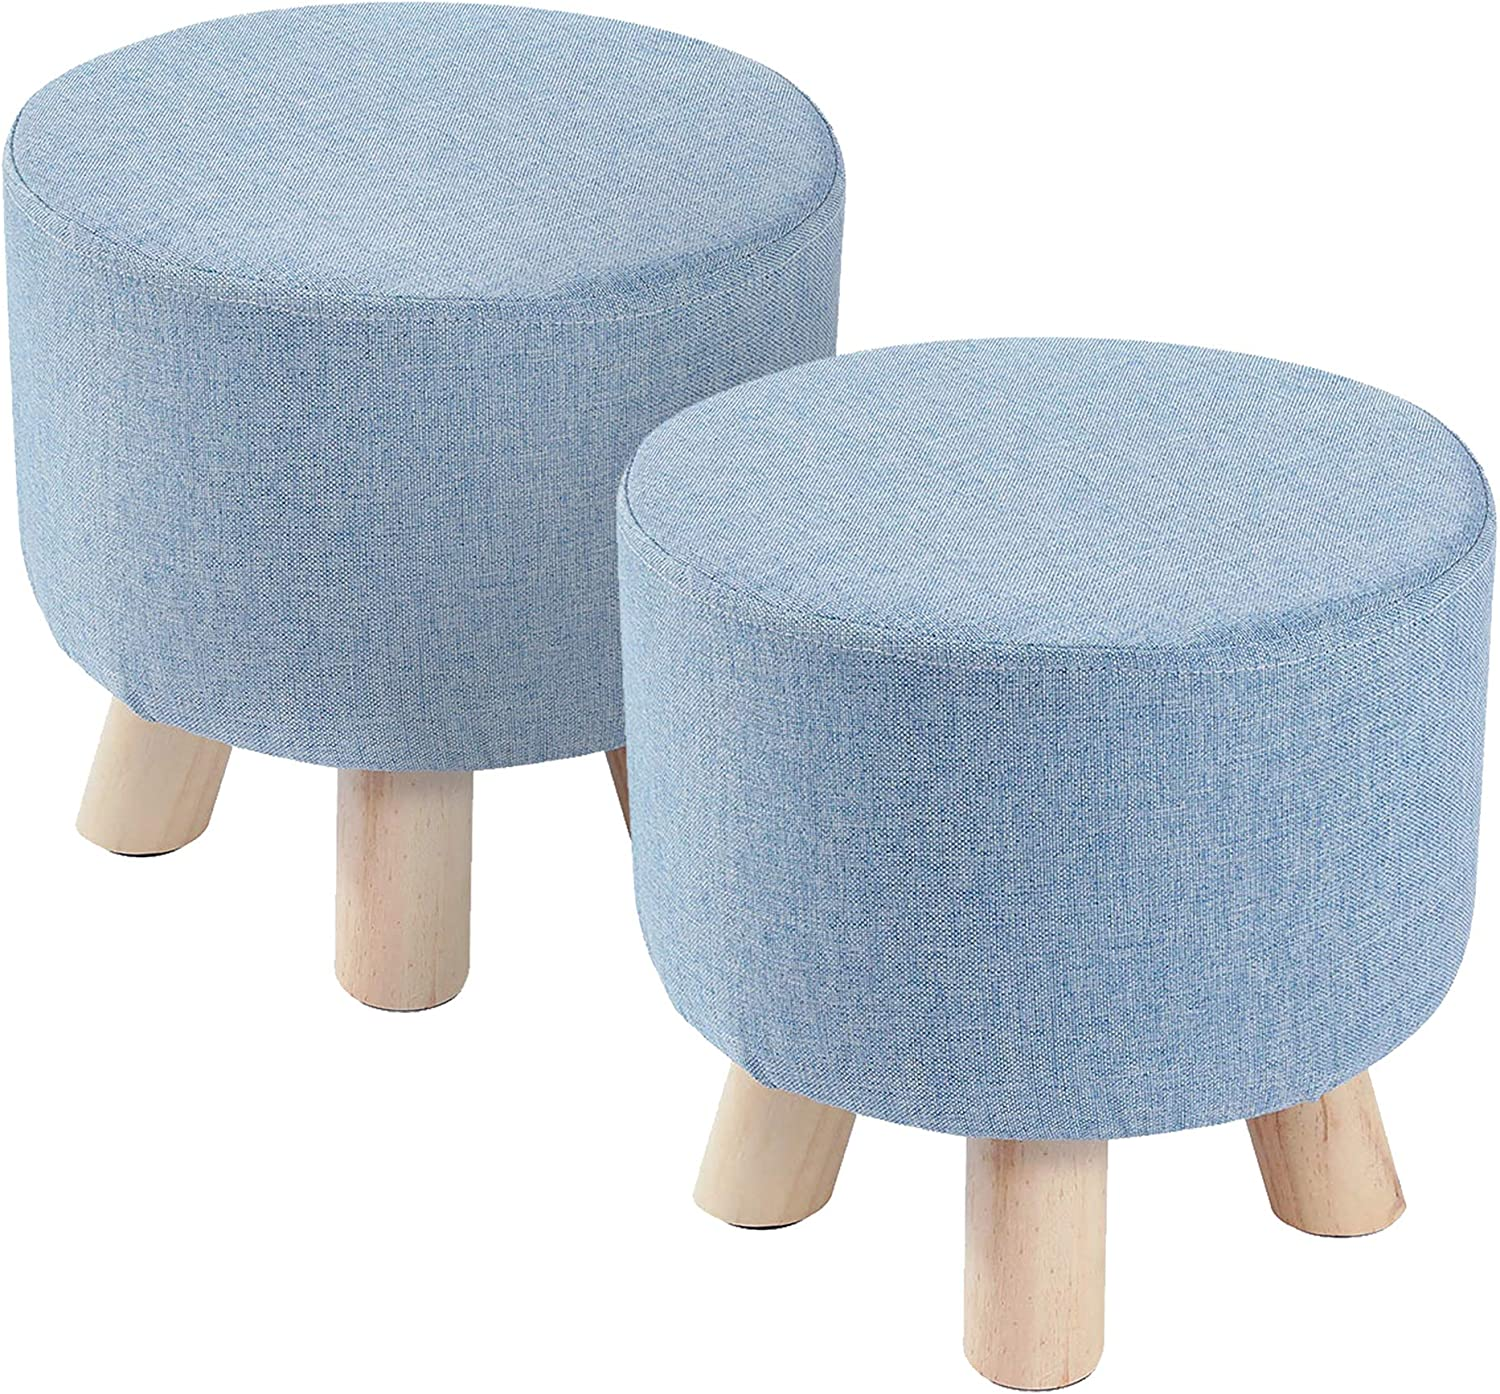 Muoldjin Padded Soft Round Ottoman Footrest Stool, Linen Fabric Padded Seat, Pouf Footstool Ottoman with Non-Skid Wooden Legs for Living Room, Bedroom, Kids Room, Blue, 2PC